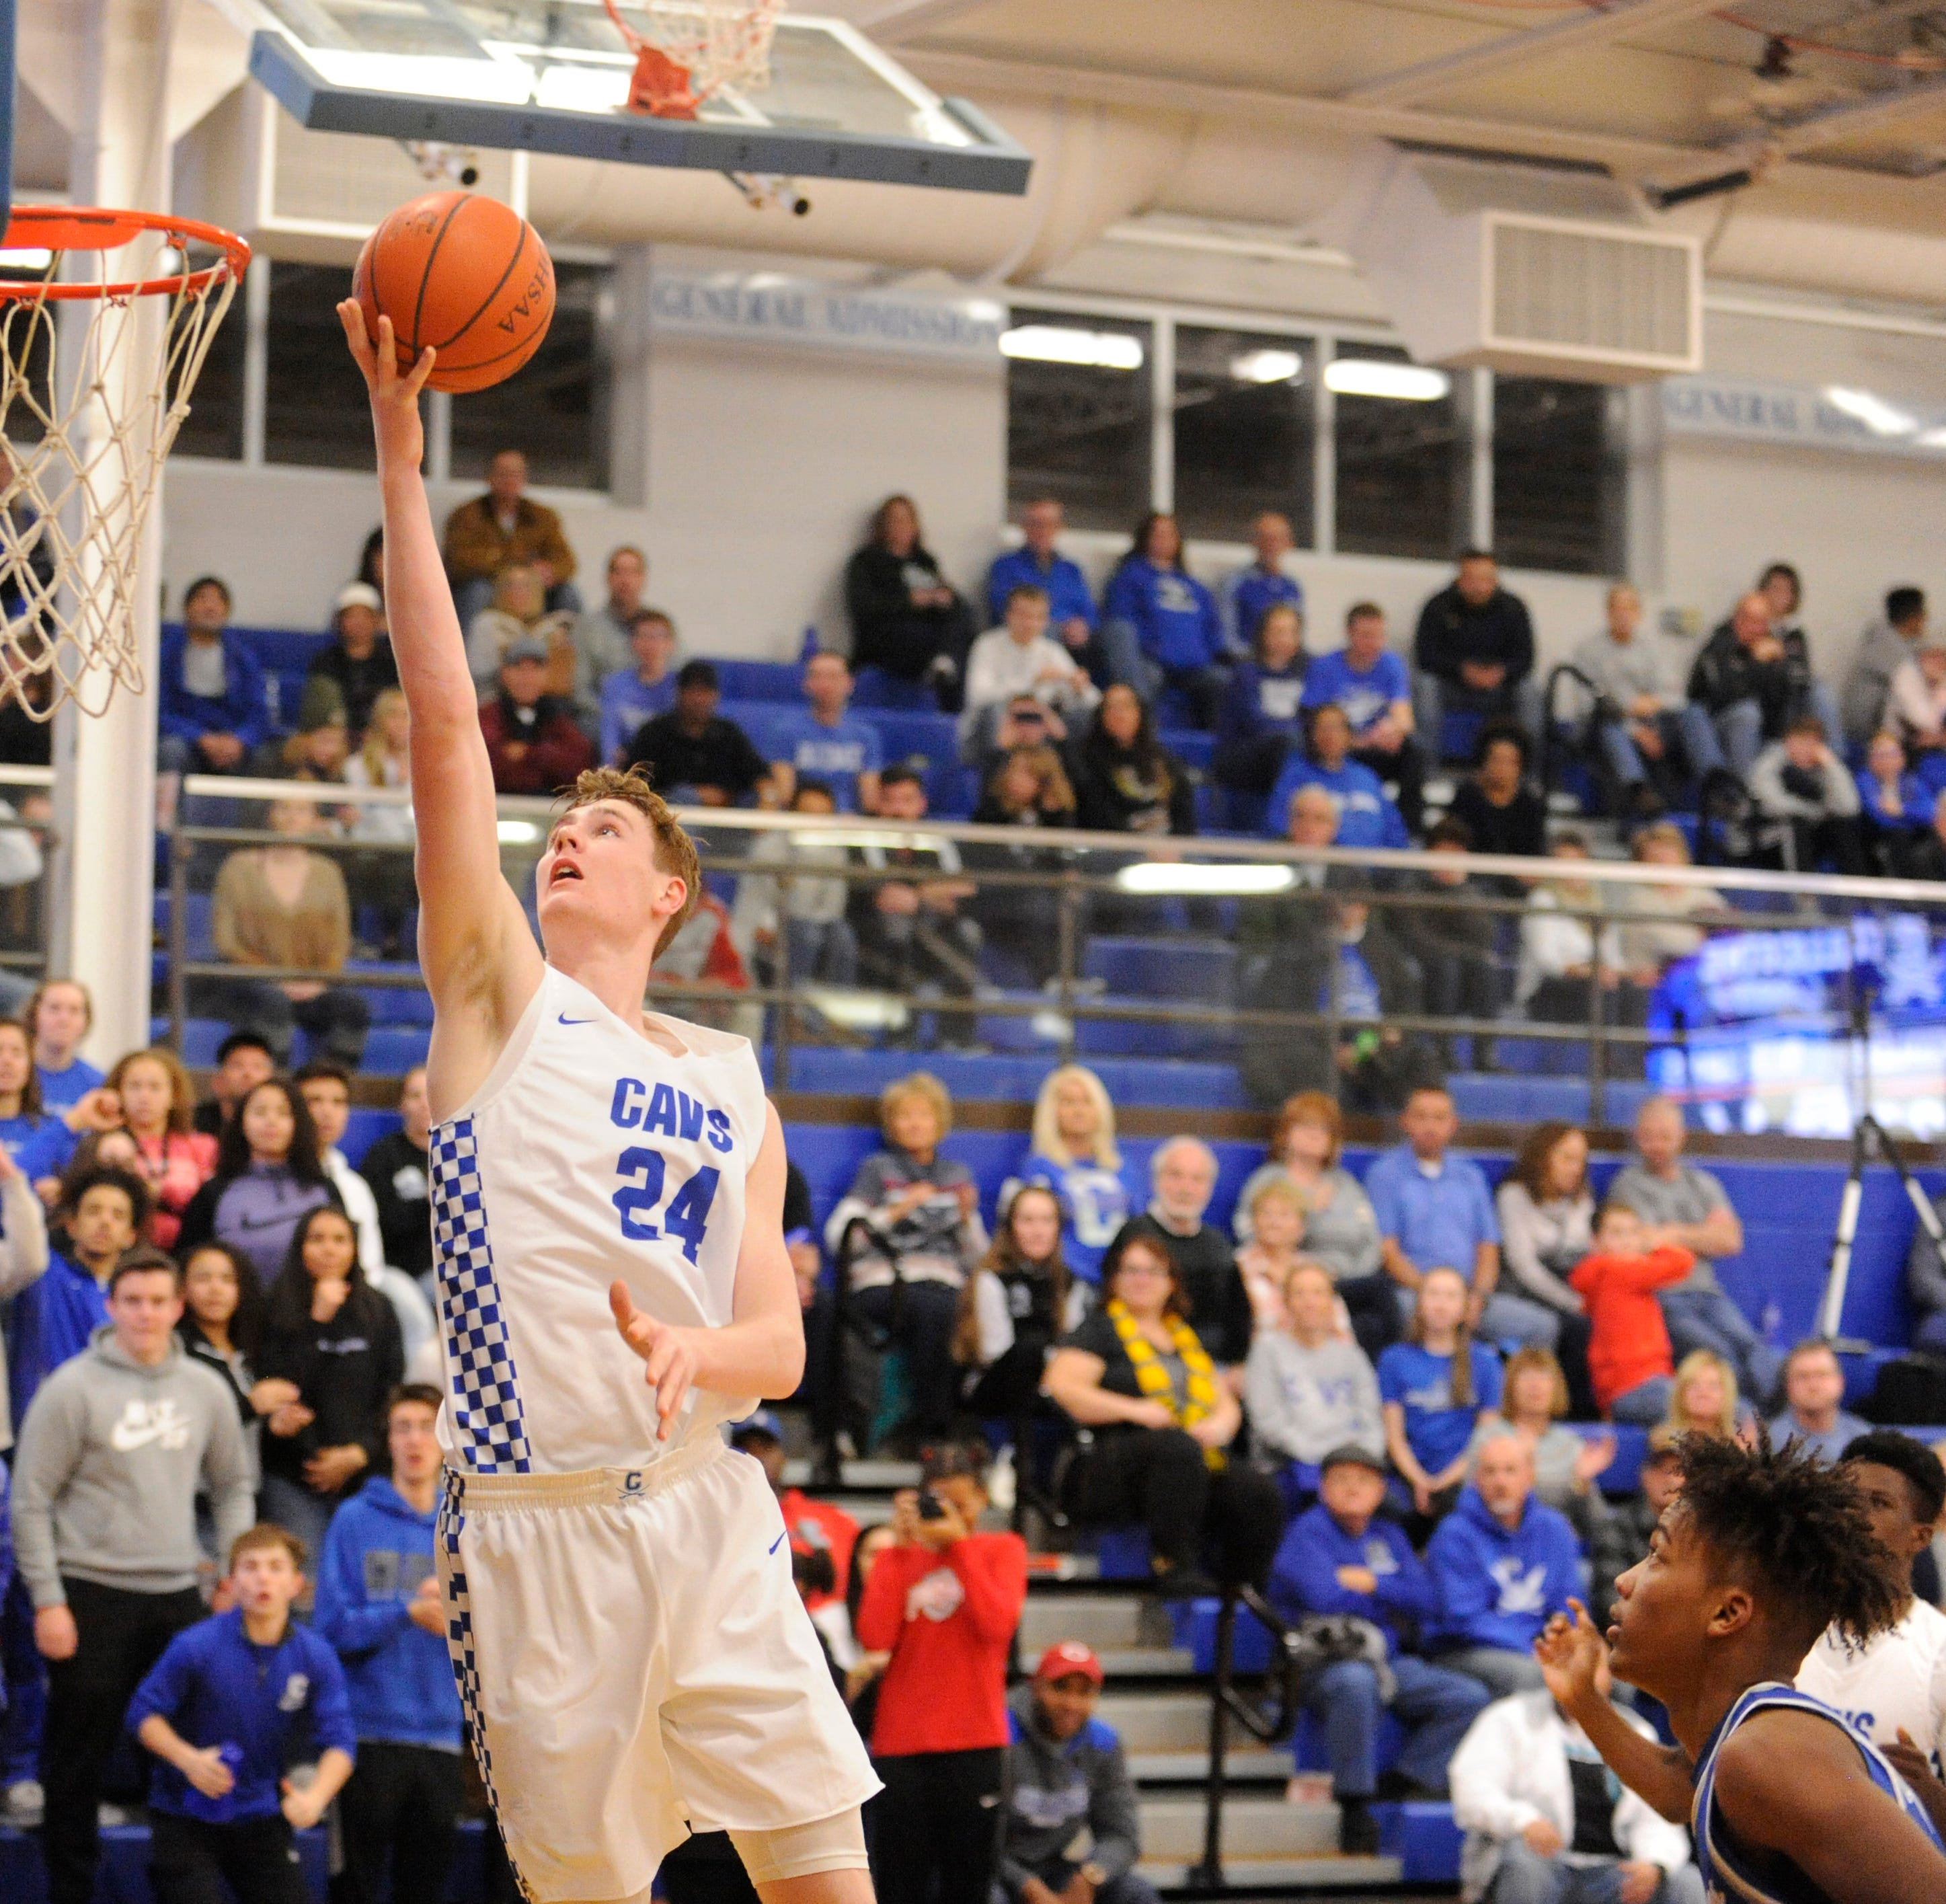 OHIO HS BASKETBALL: Four takeaways from Chillicothe's 56-26 blowout win over Washington